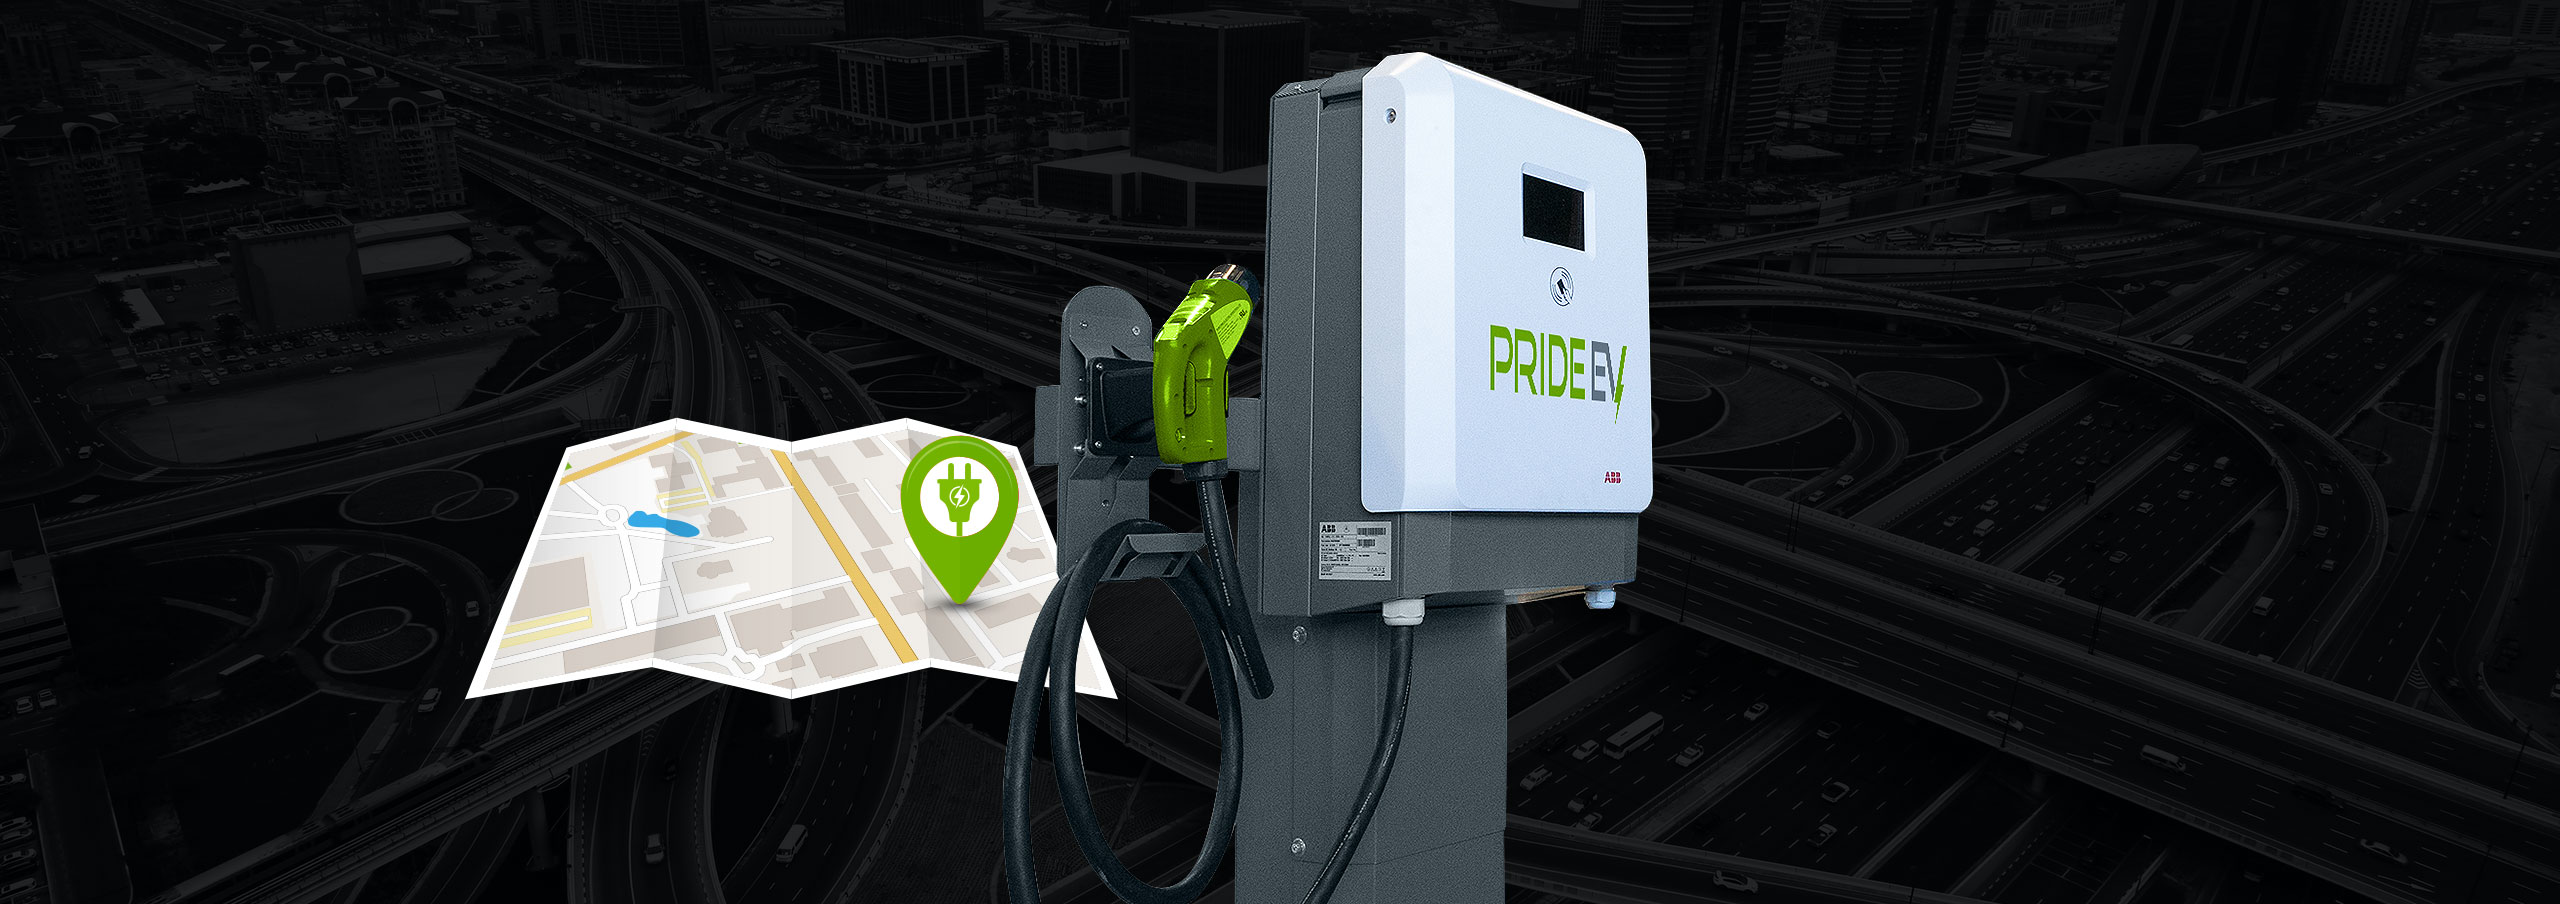 Map with charger location pin beside Pride EV charging equipment